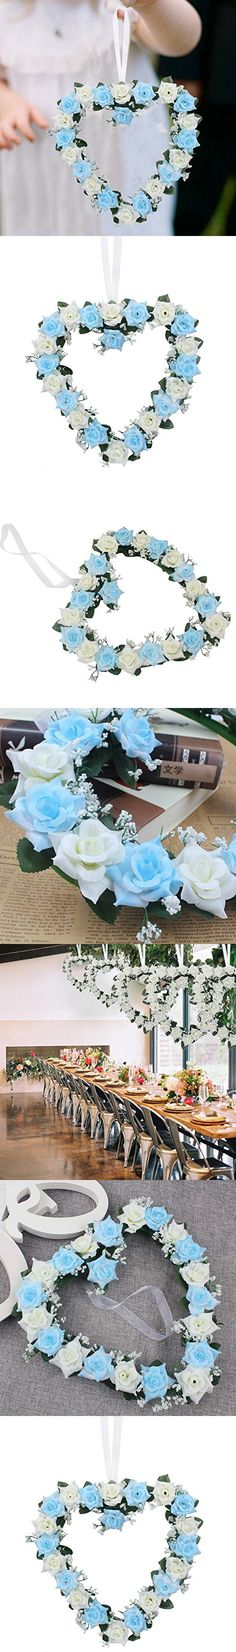 Adeeing 3PCS Heart-Shaped Rose Door Wall Hanging Wreaths Wedding Festival Decoration Blue and White